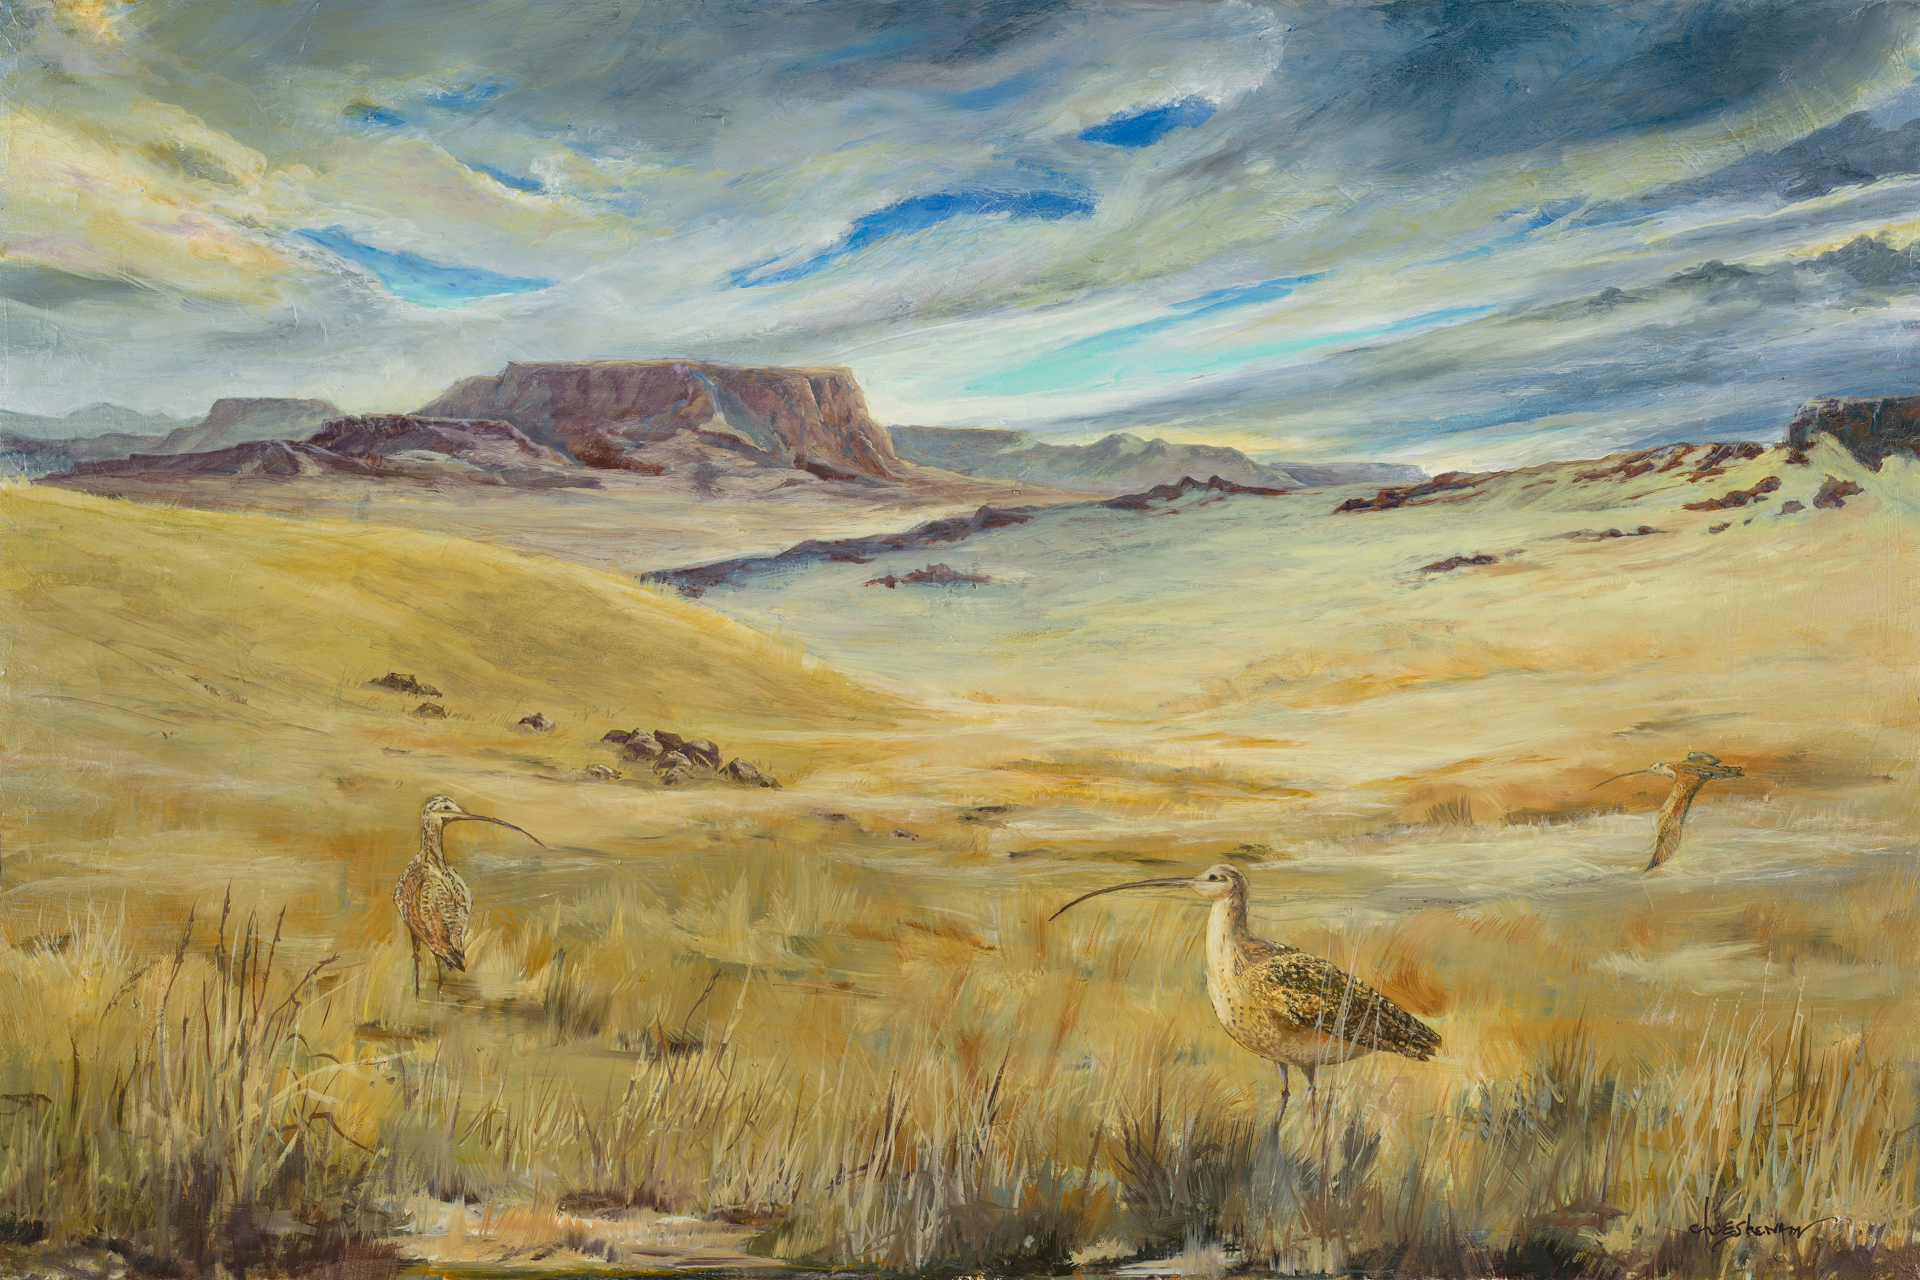 Long billed Curlews 24x36 oil on canvas $2300.00